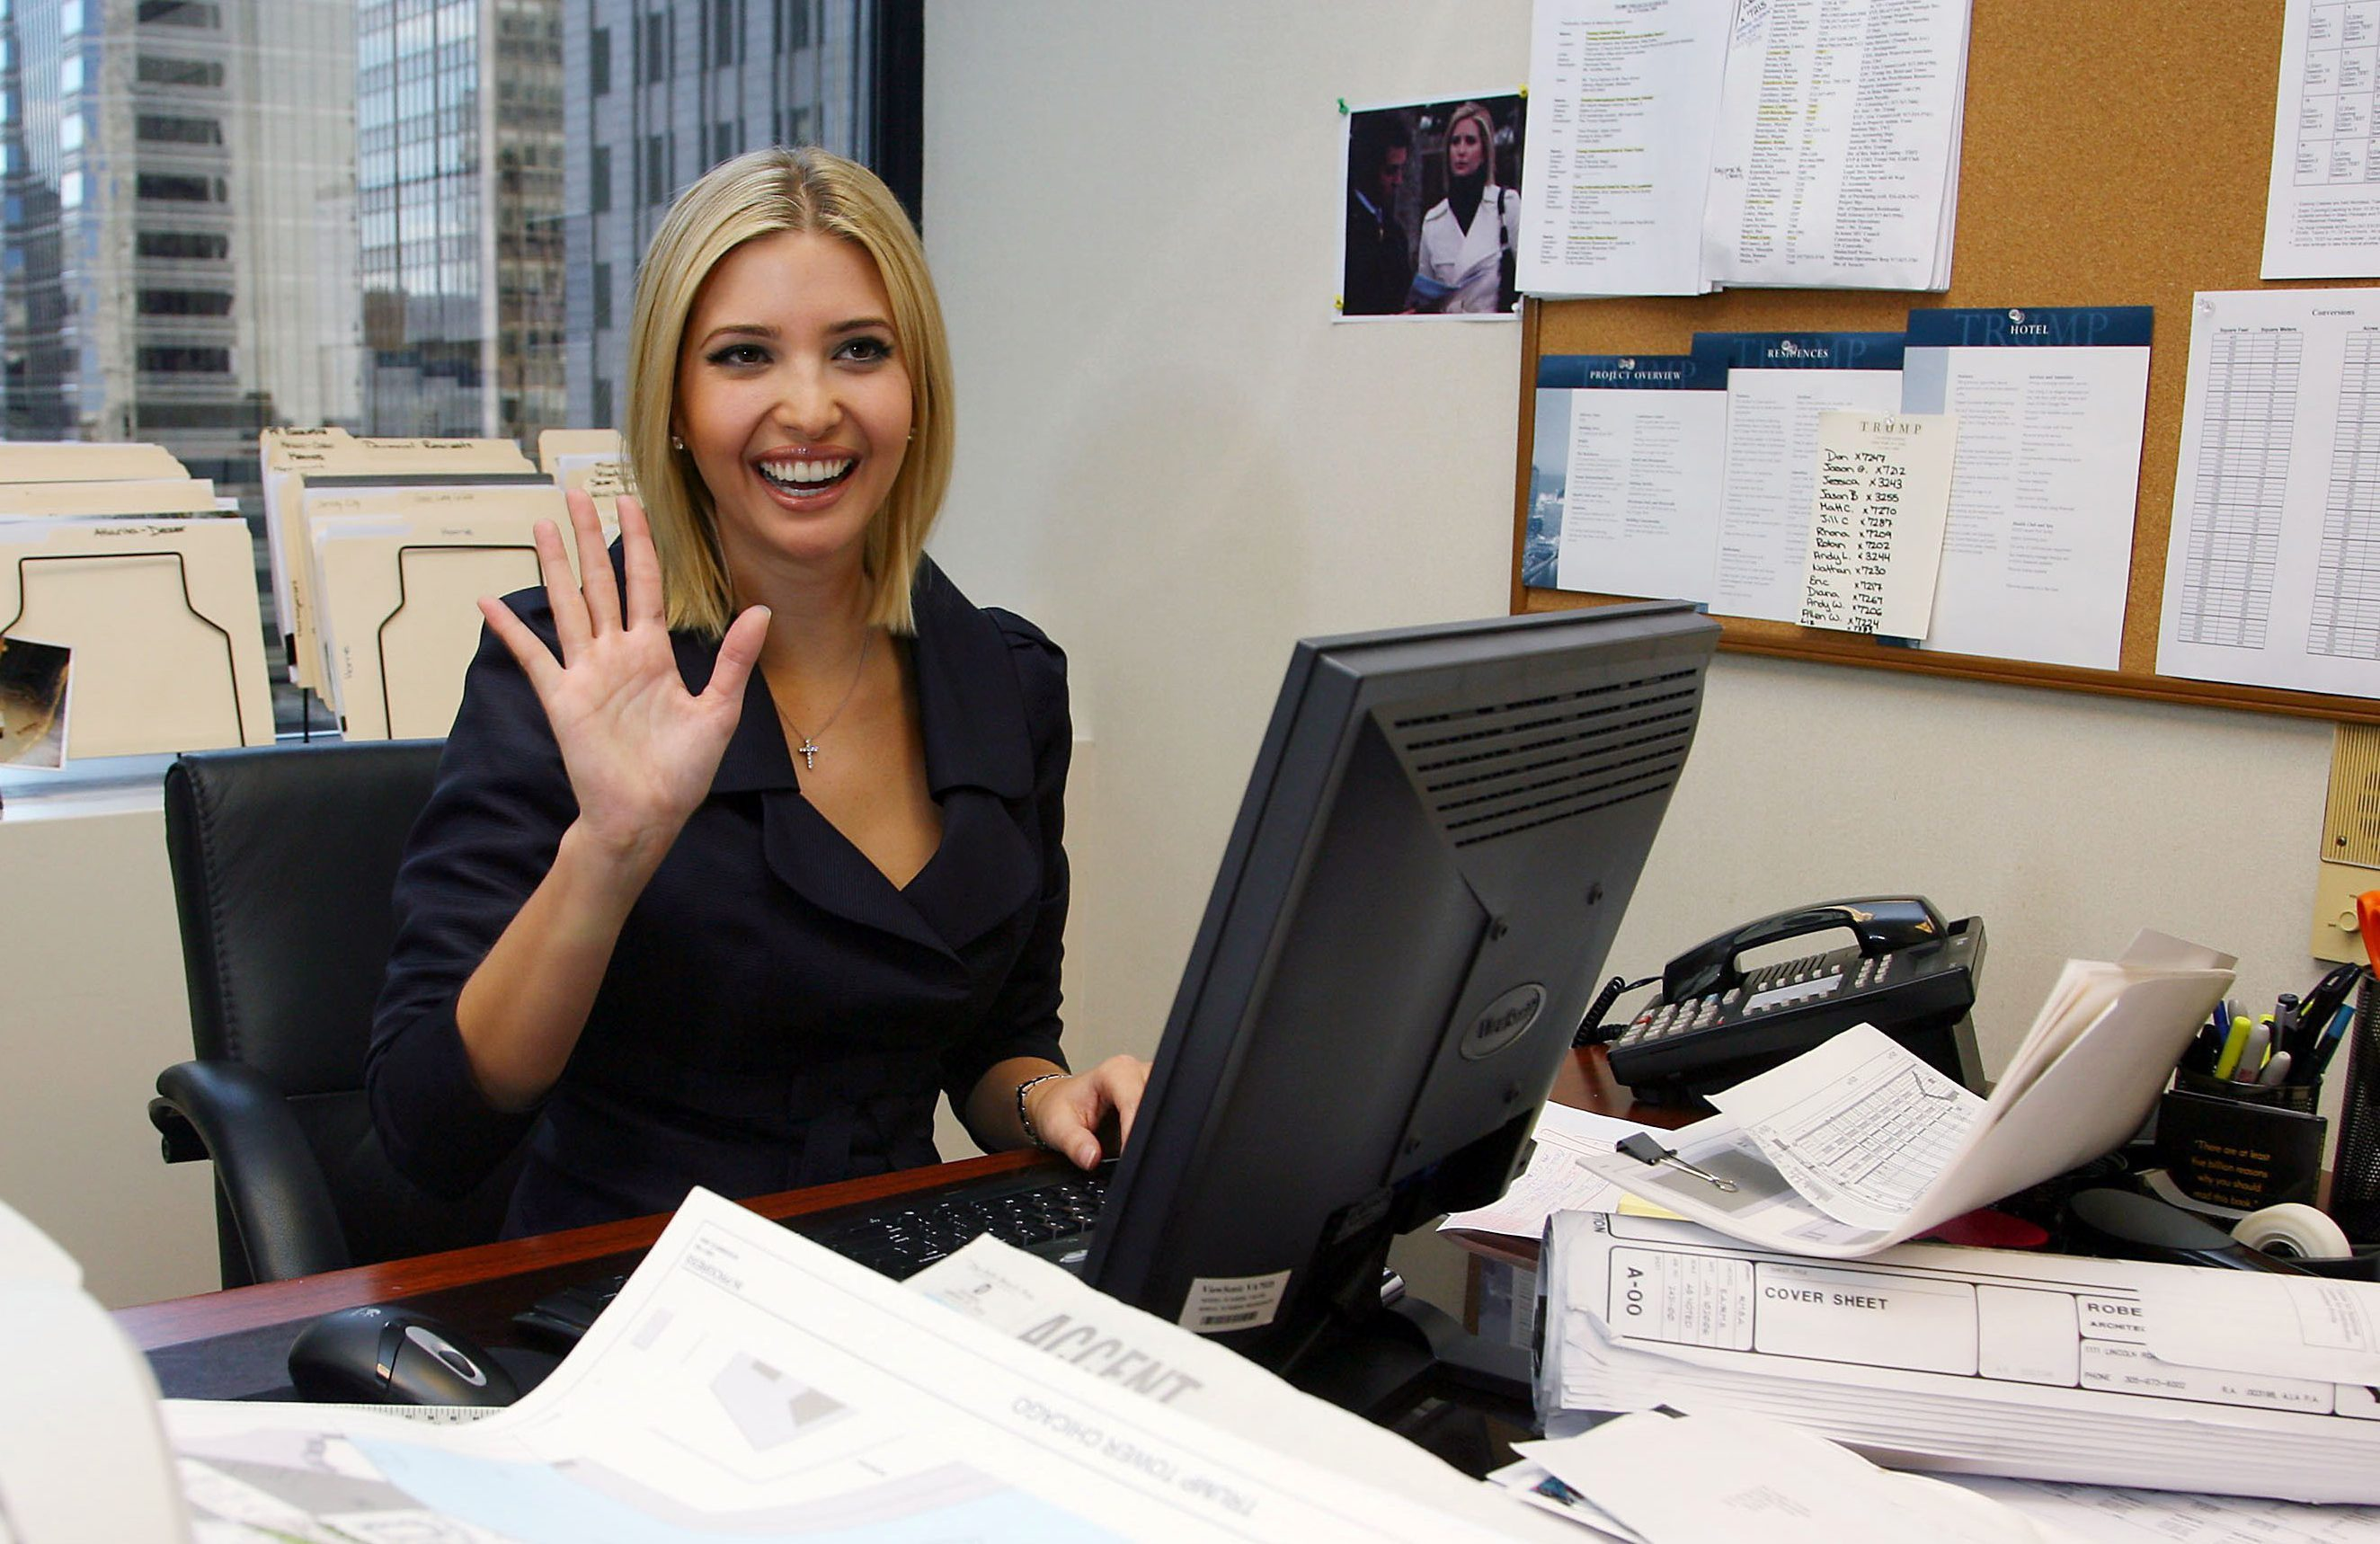 Ivanka attended Georgetown University followed by Wharton Business School